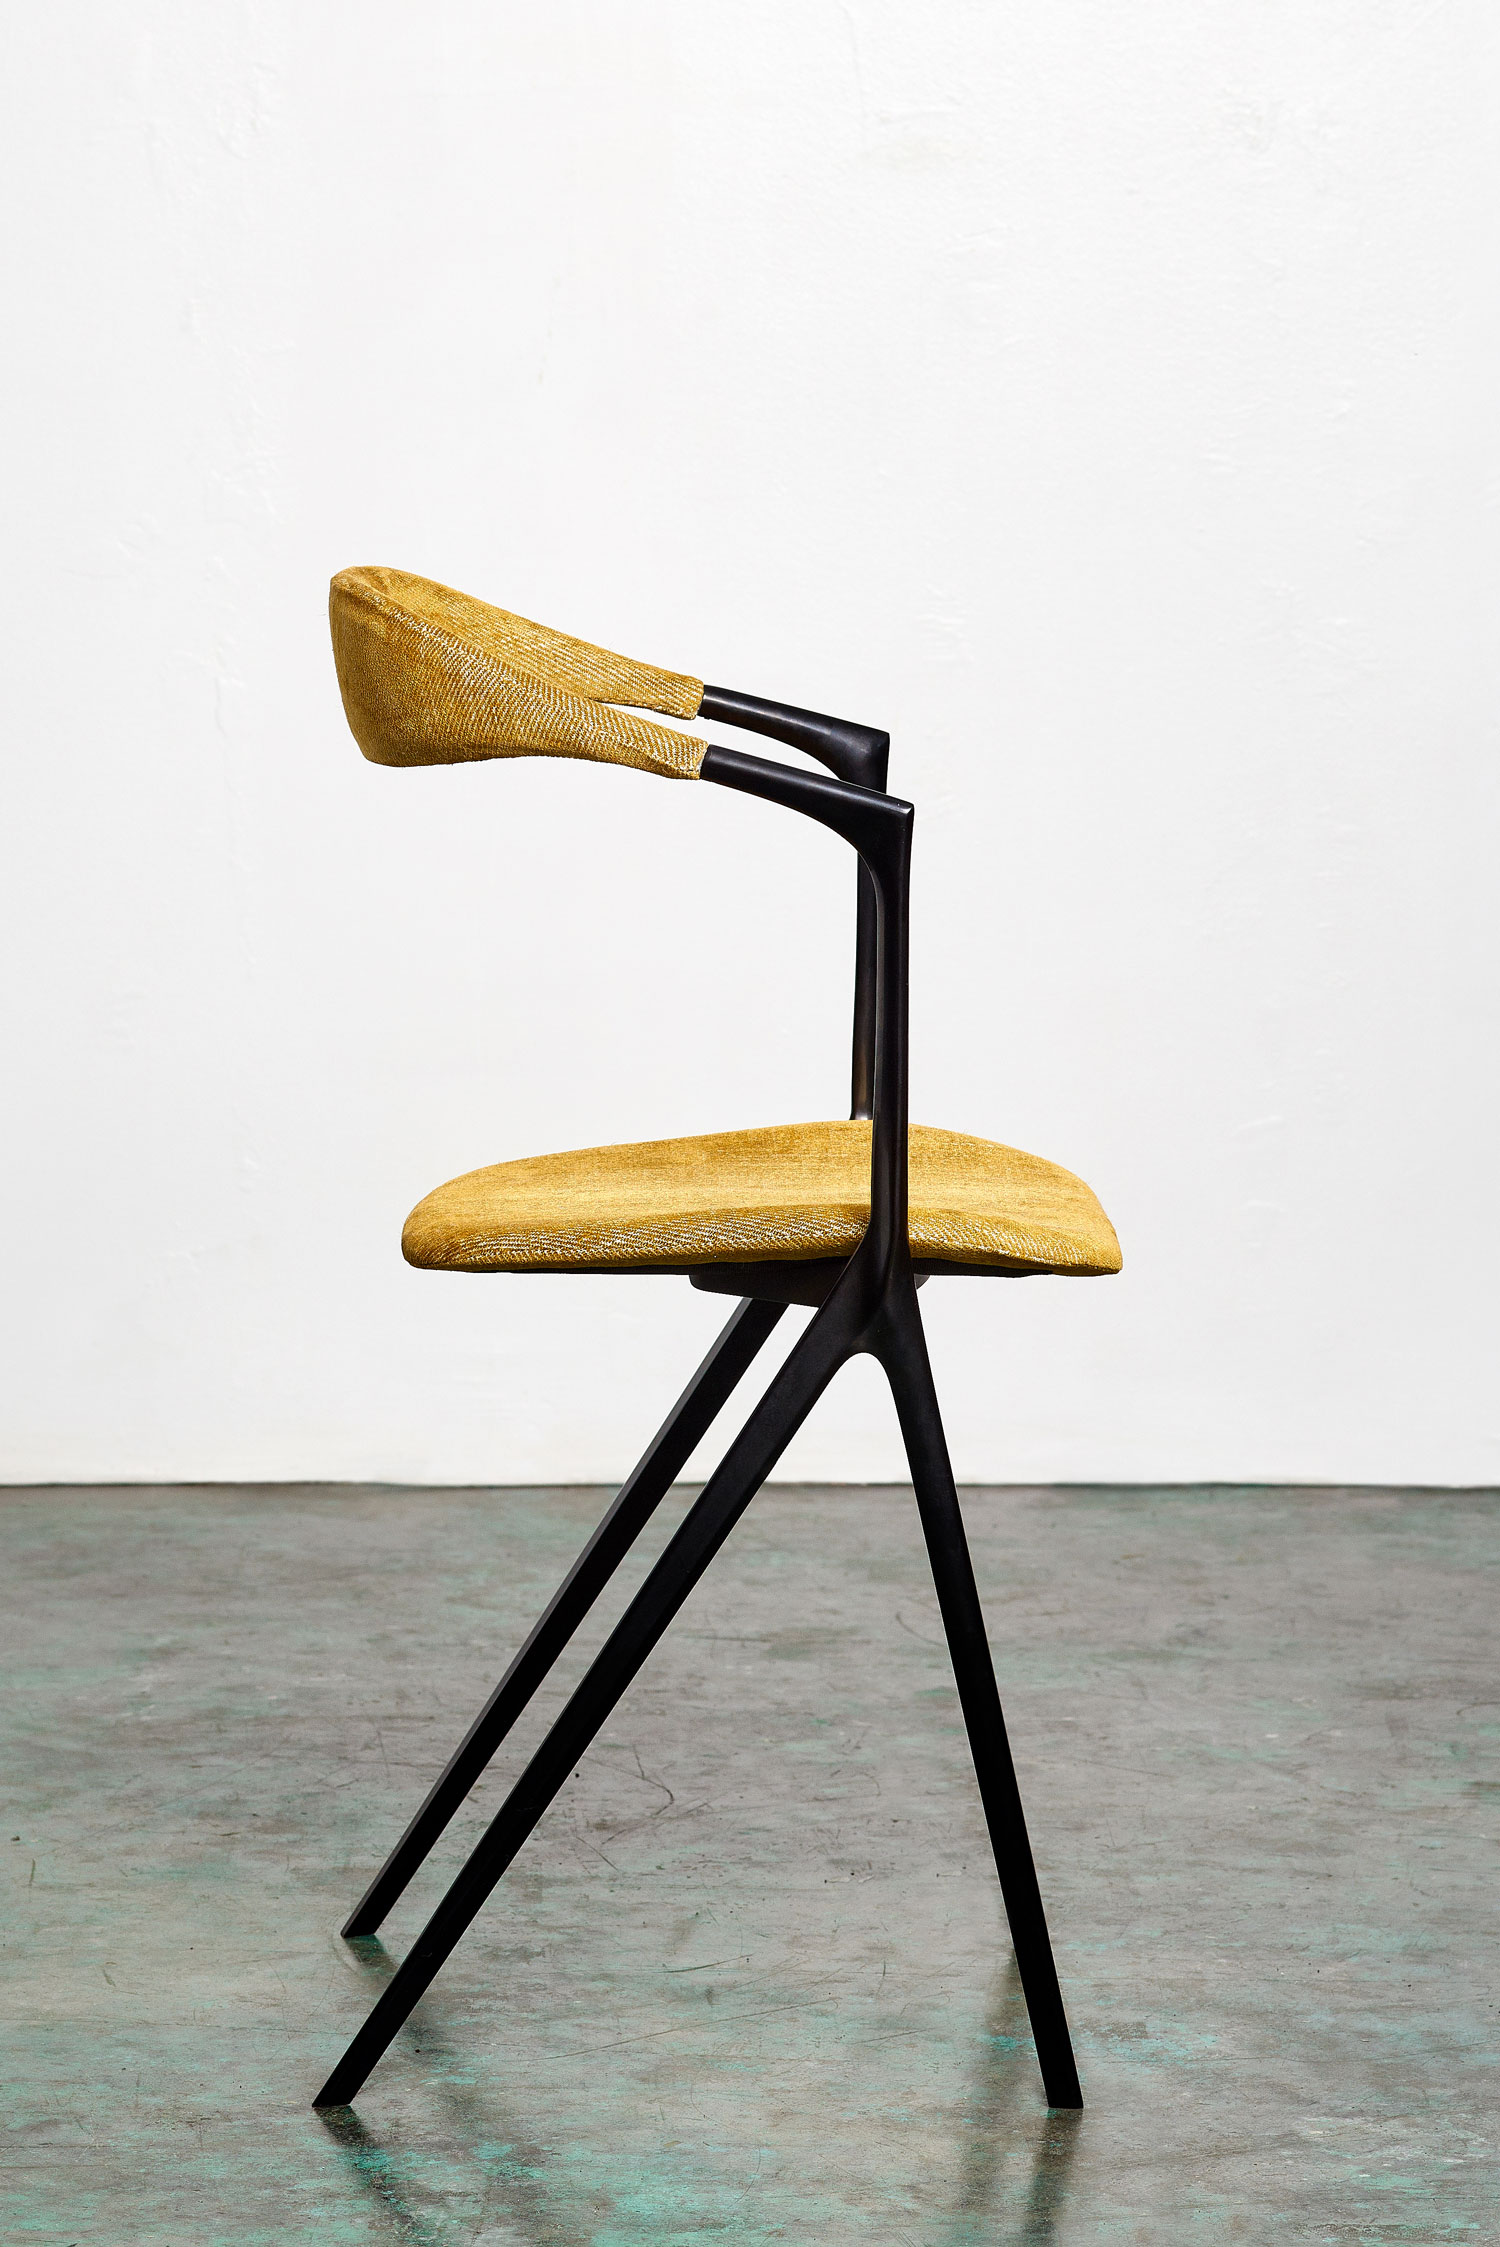 Local Design Charles Wilson, Australian Designers Milan | Yellowtrace